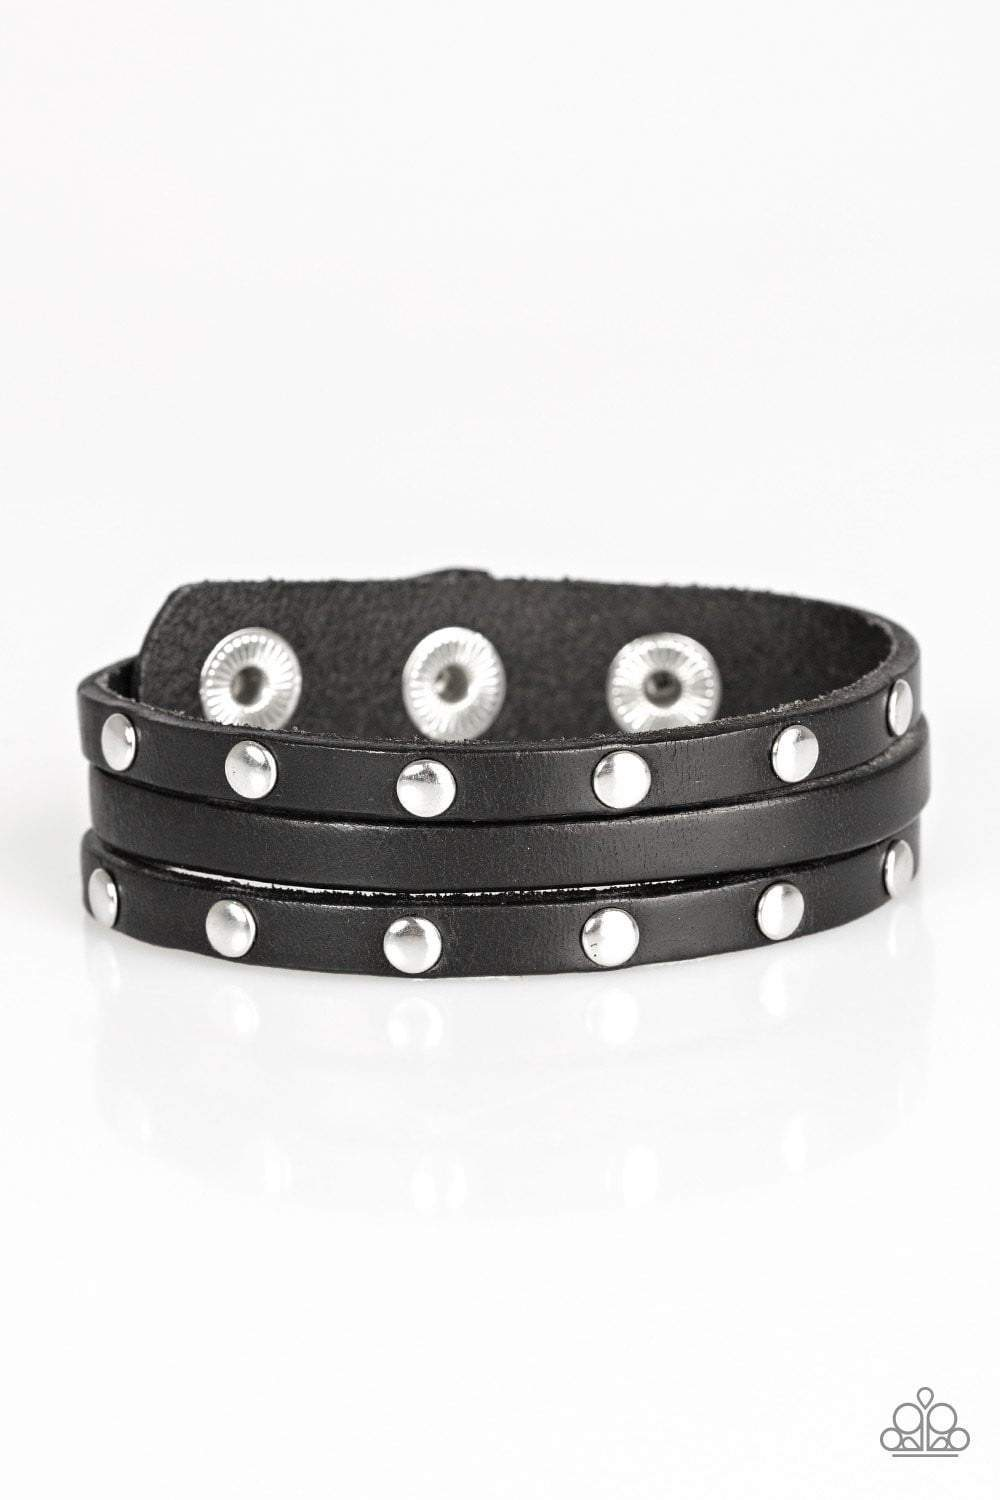 Paparazzi Radical Raider - Black Bracelet - Bling It On Online